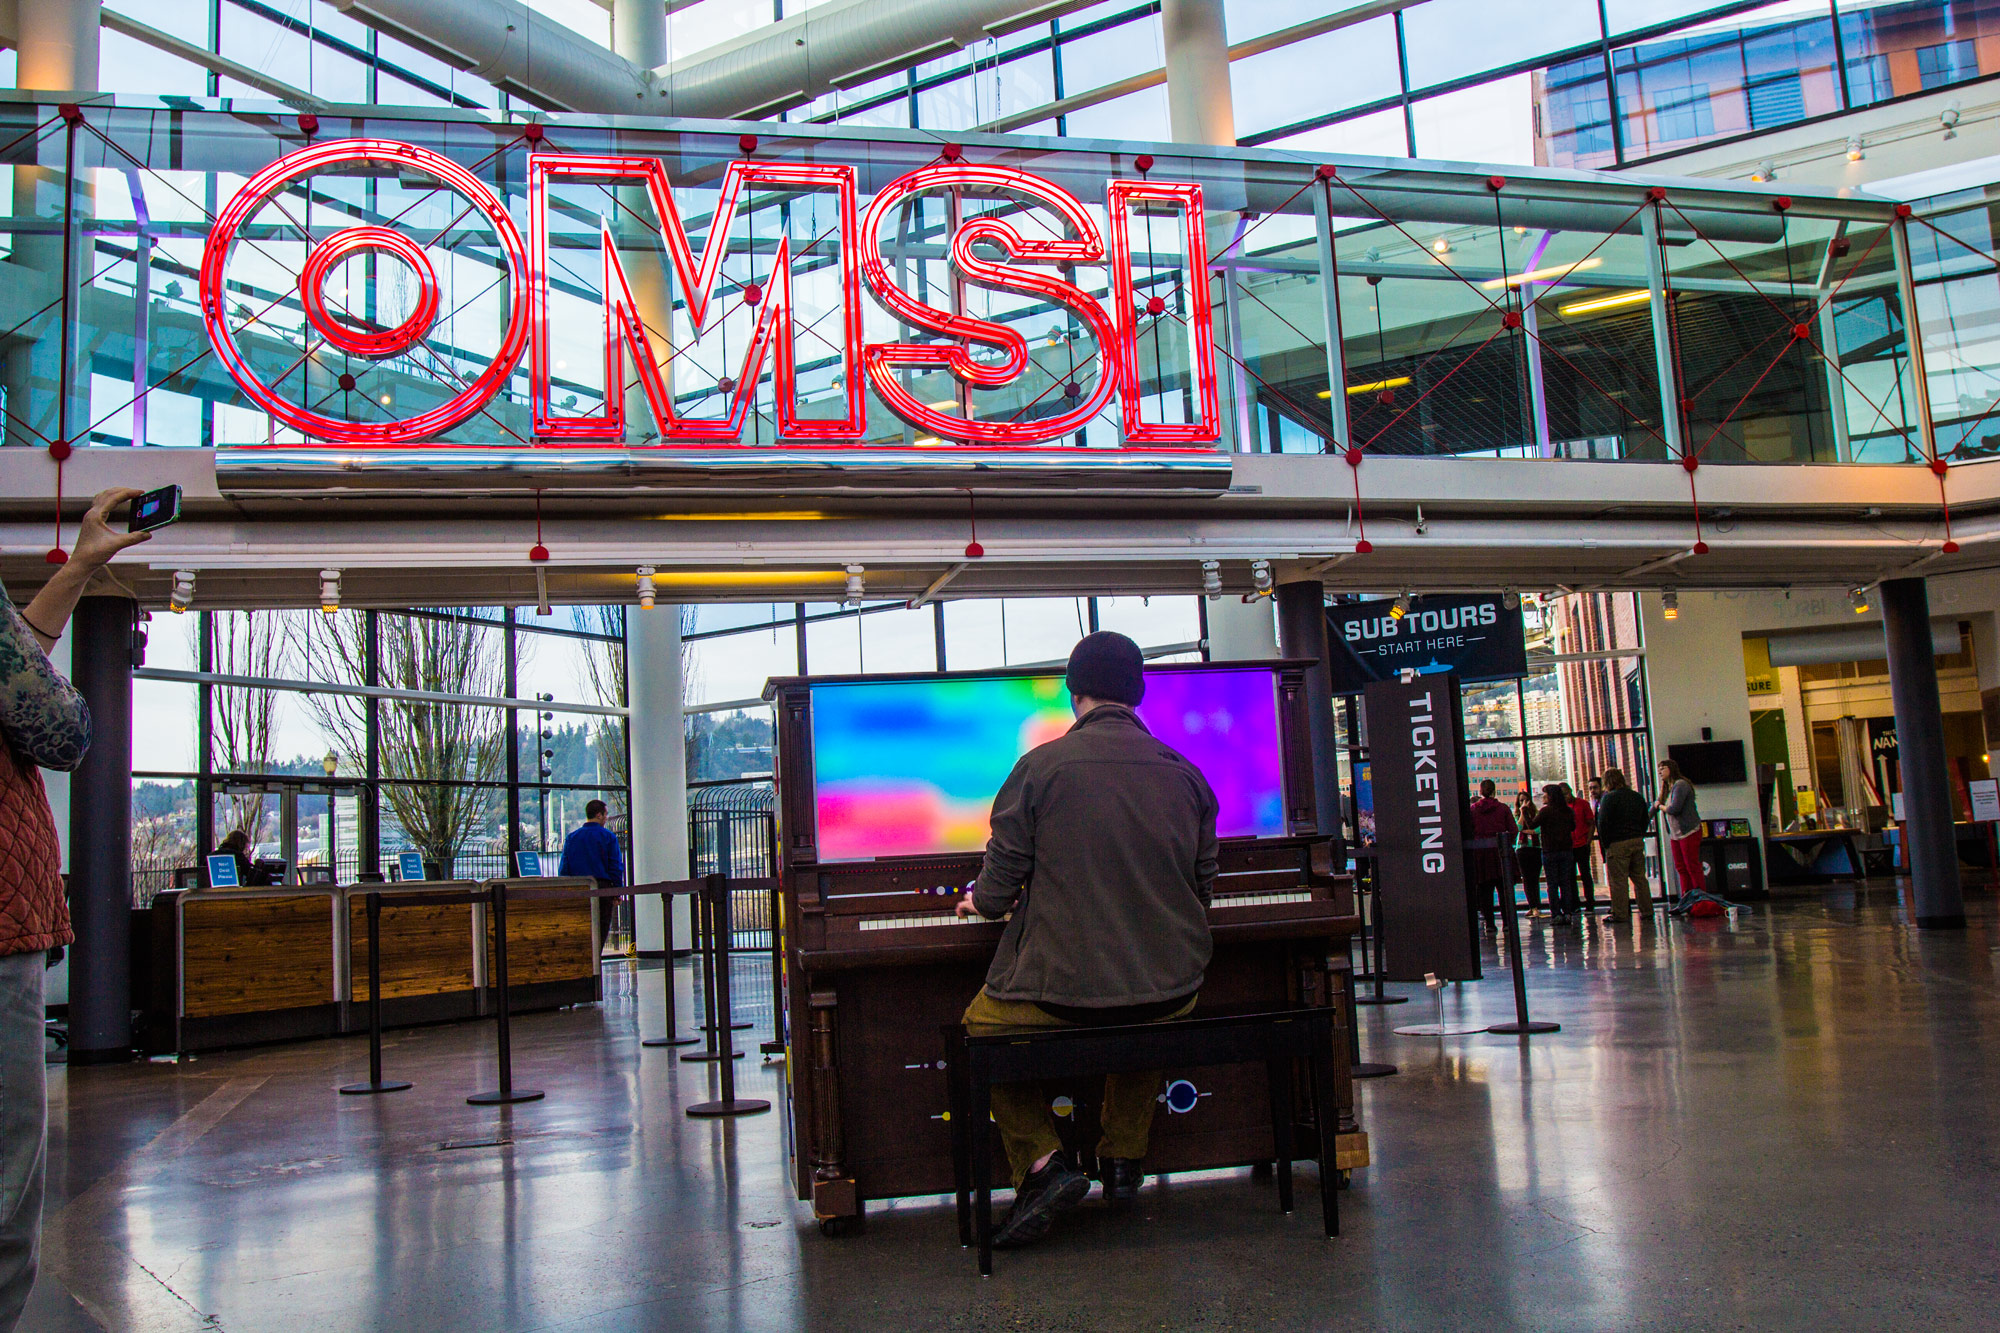 CymaSpace's piano being played at omsi.